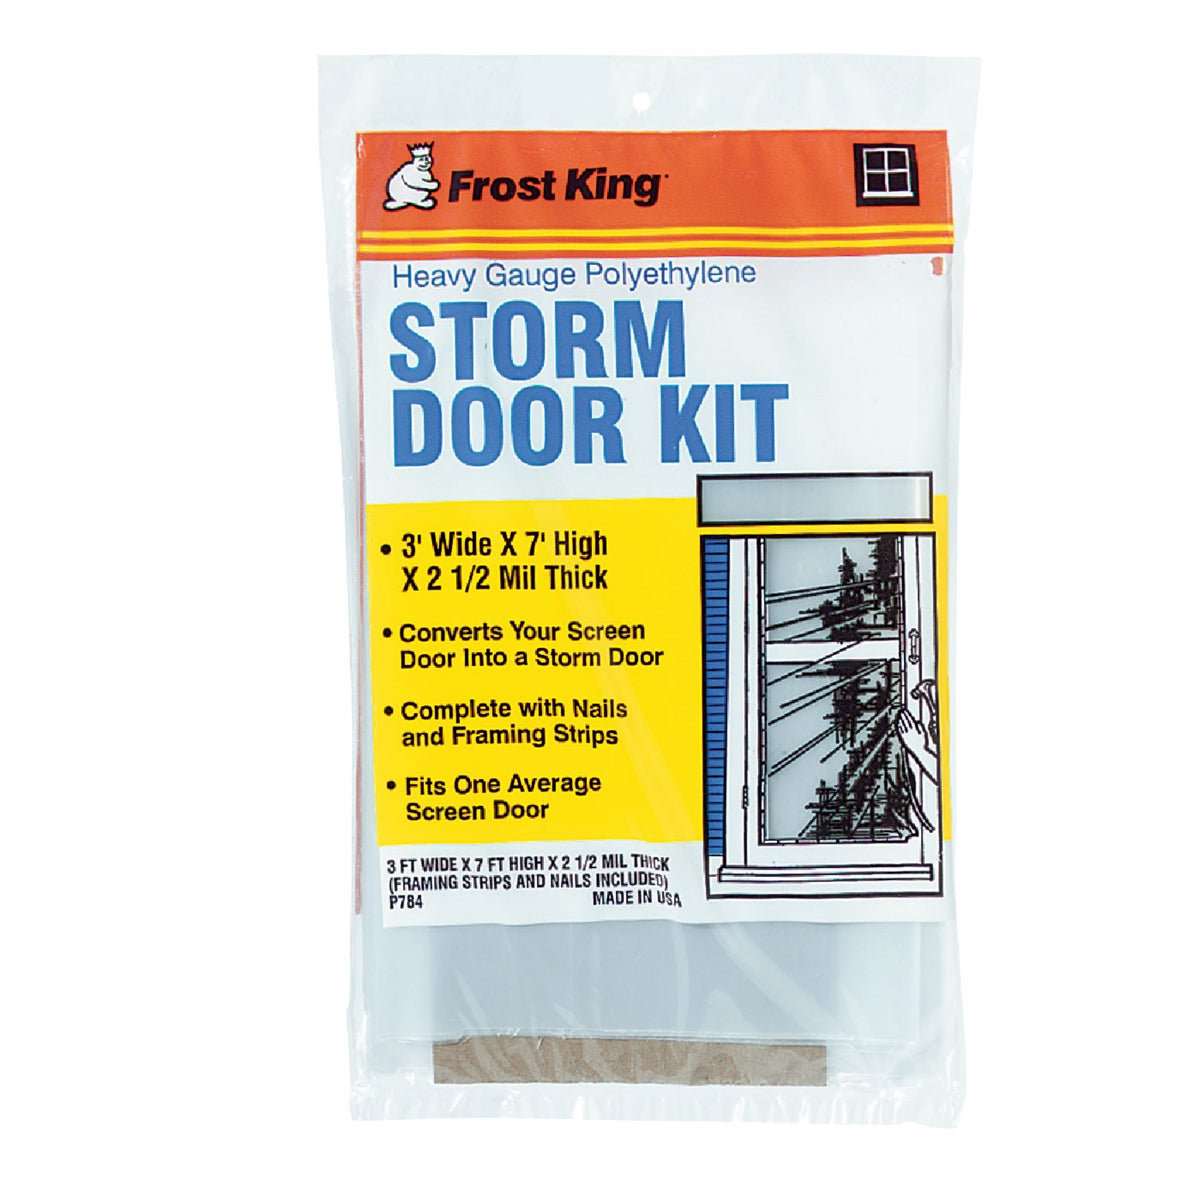 Thermwell Prods. Co. 3X7 STORM DOOR KIT P784H